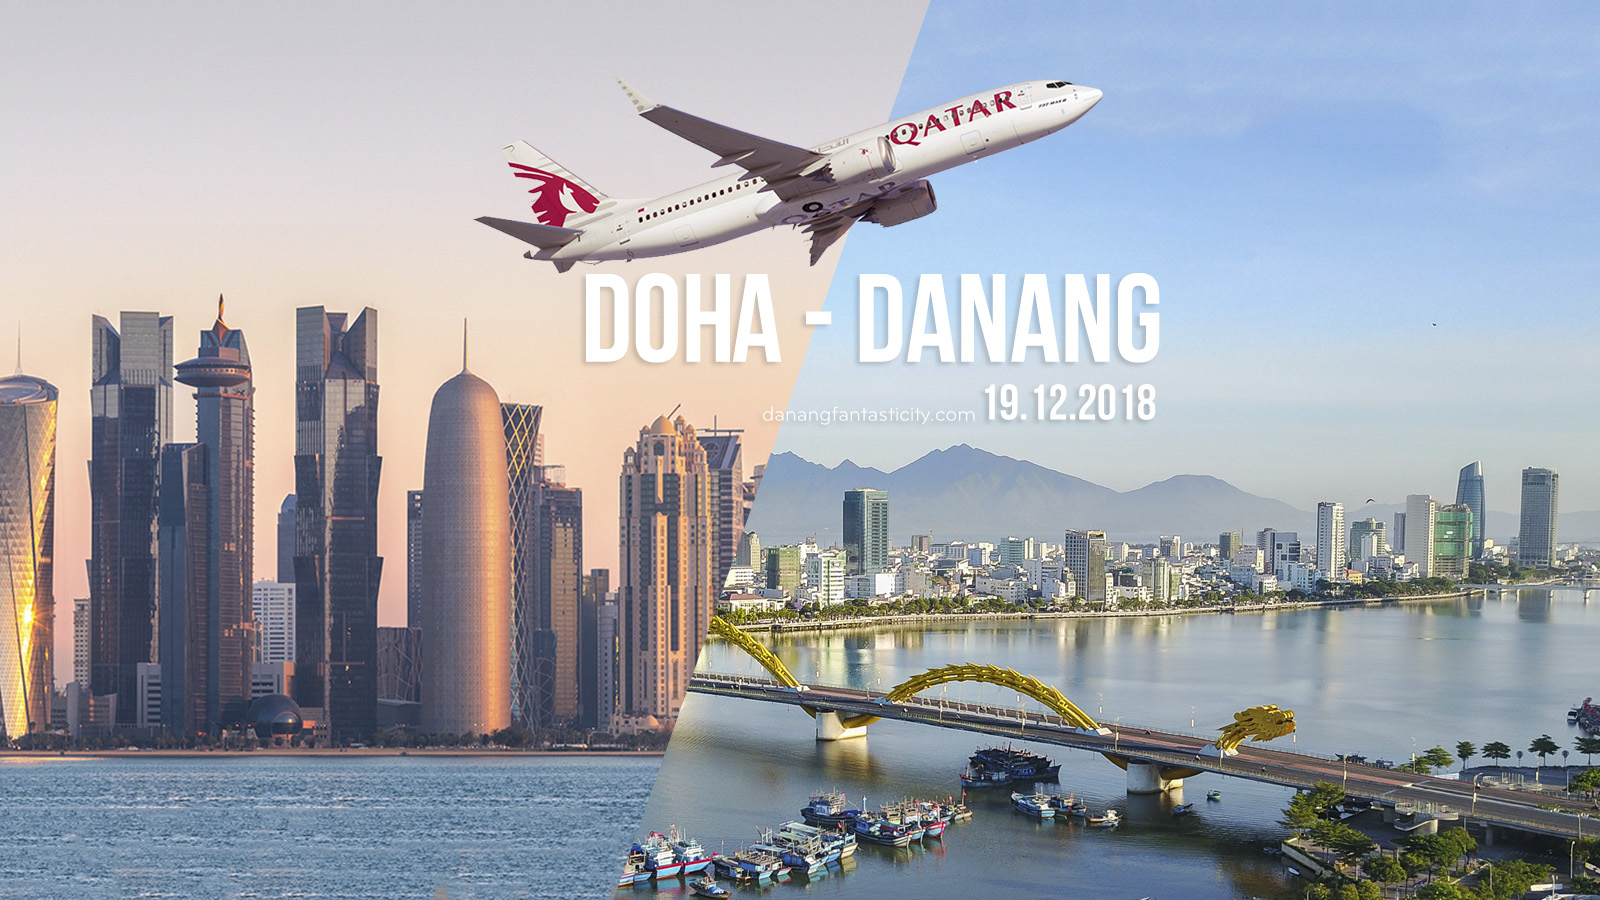 QATAR AIRWAYS TO LAUNCH DA NANG, VIETNAM, CONNECTION IN DECEMBER